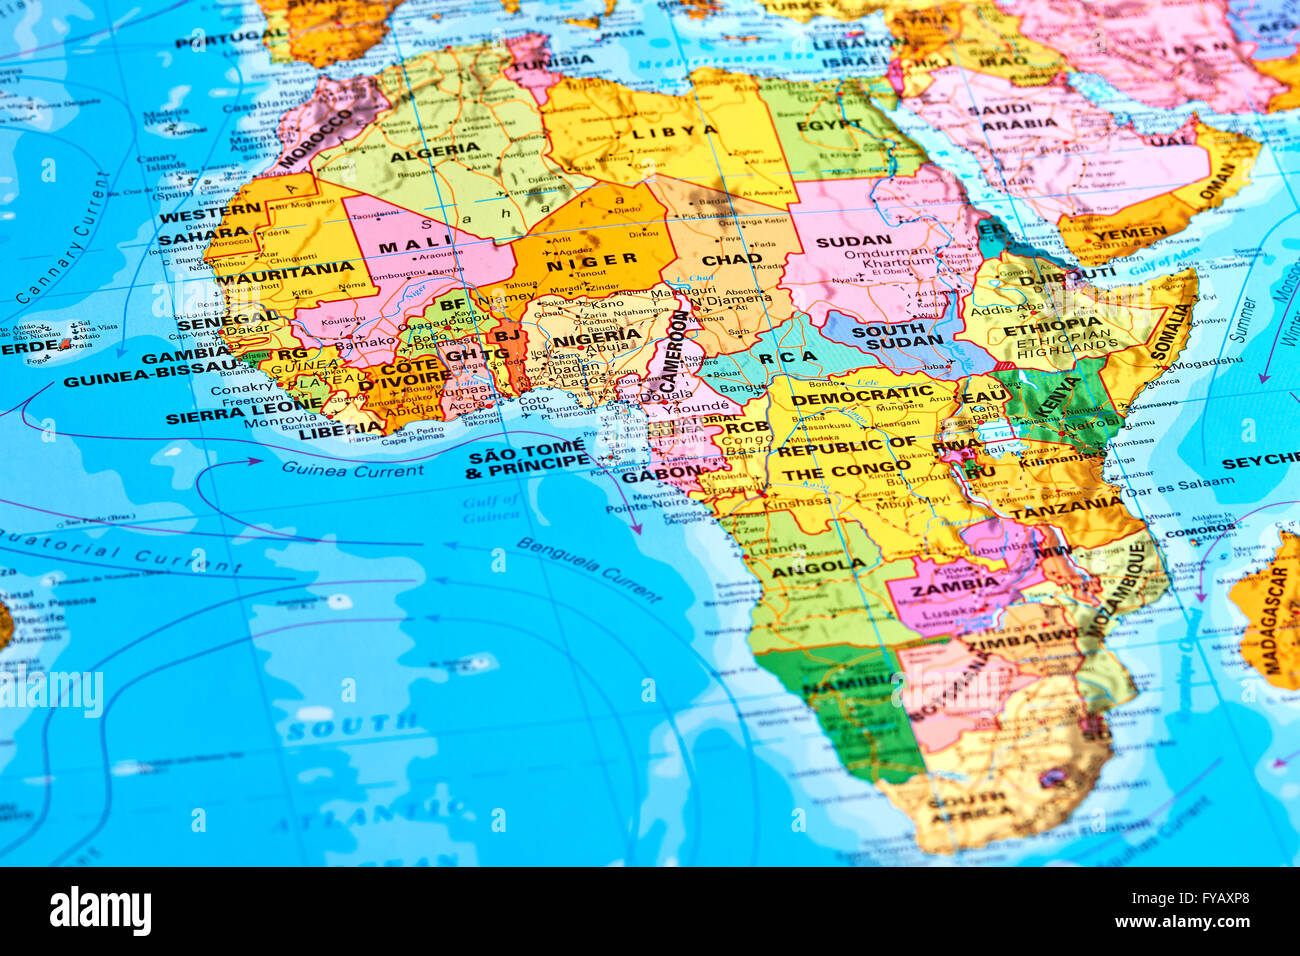 Africa map stock photos africa map stock images alamy africa oldest continent on the world map stock image gumiabroncs Image collections